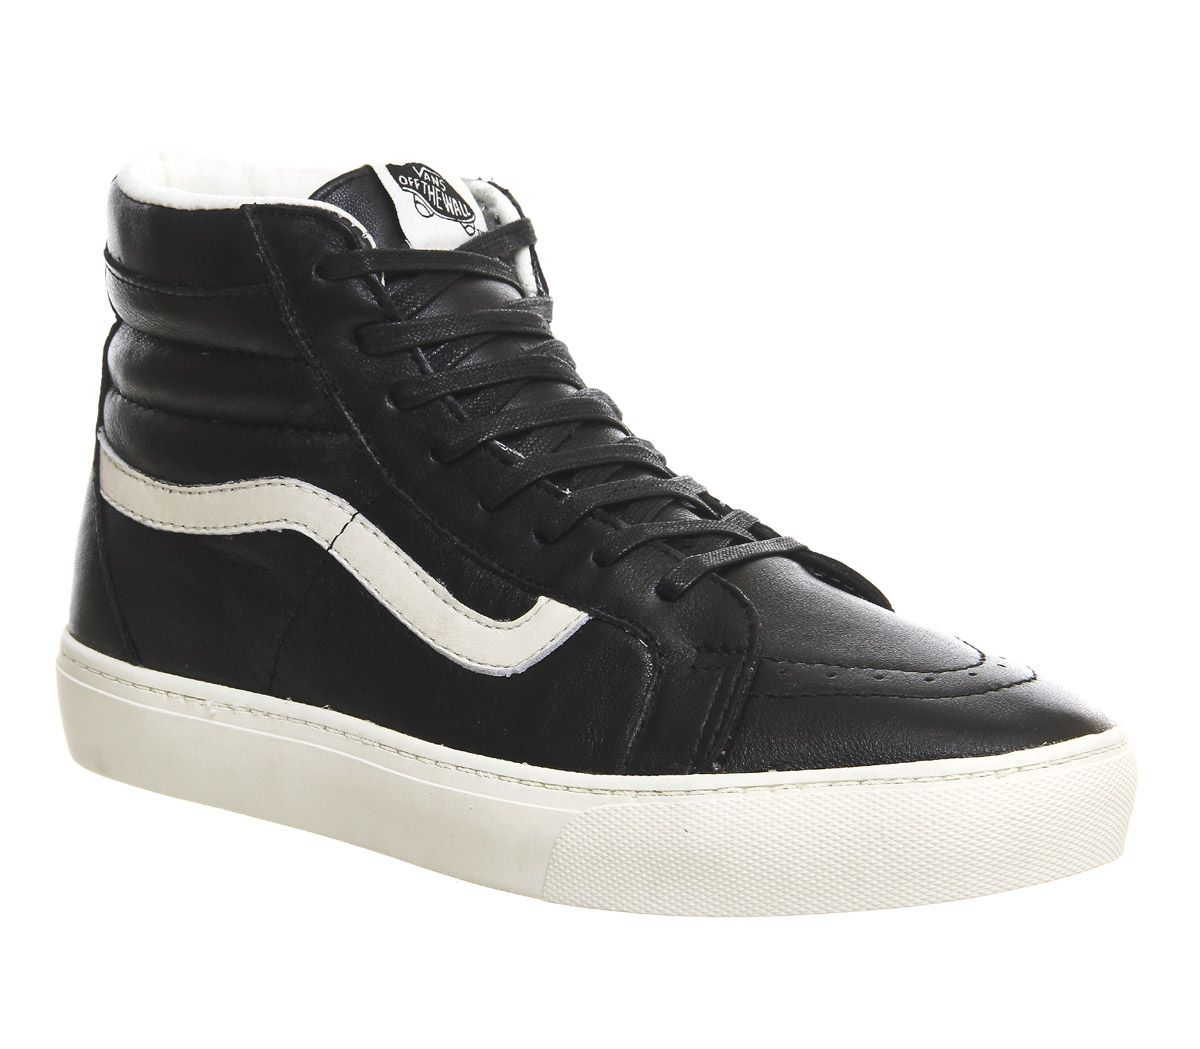 Buy Black Whisper White Vans California Sk8hi Cup Ca from OFFICE